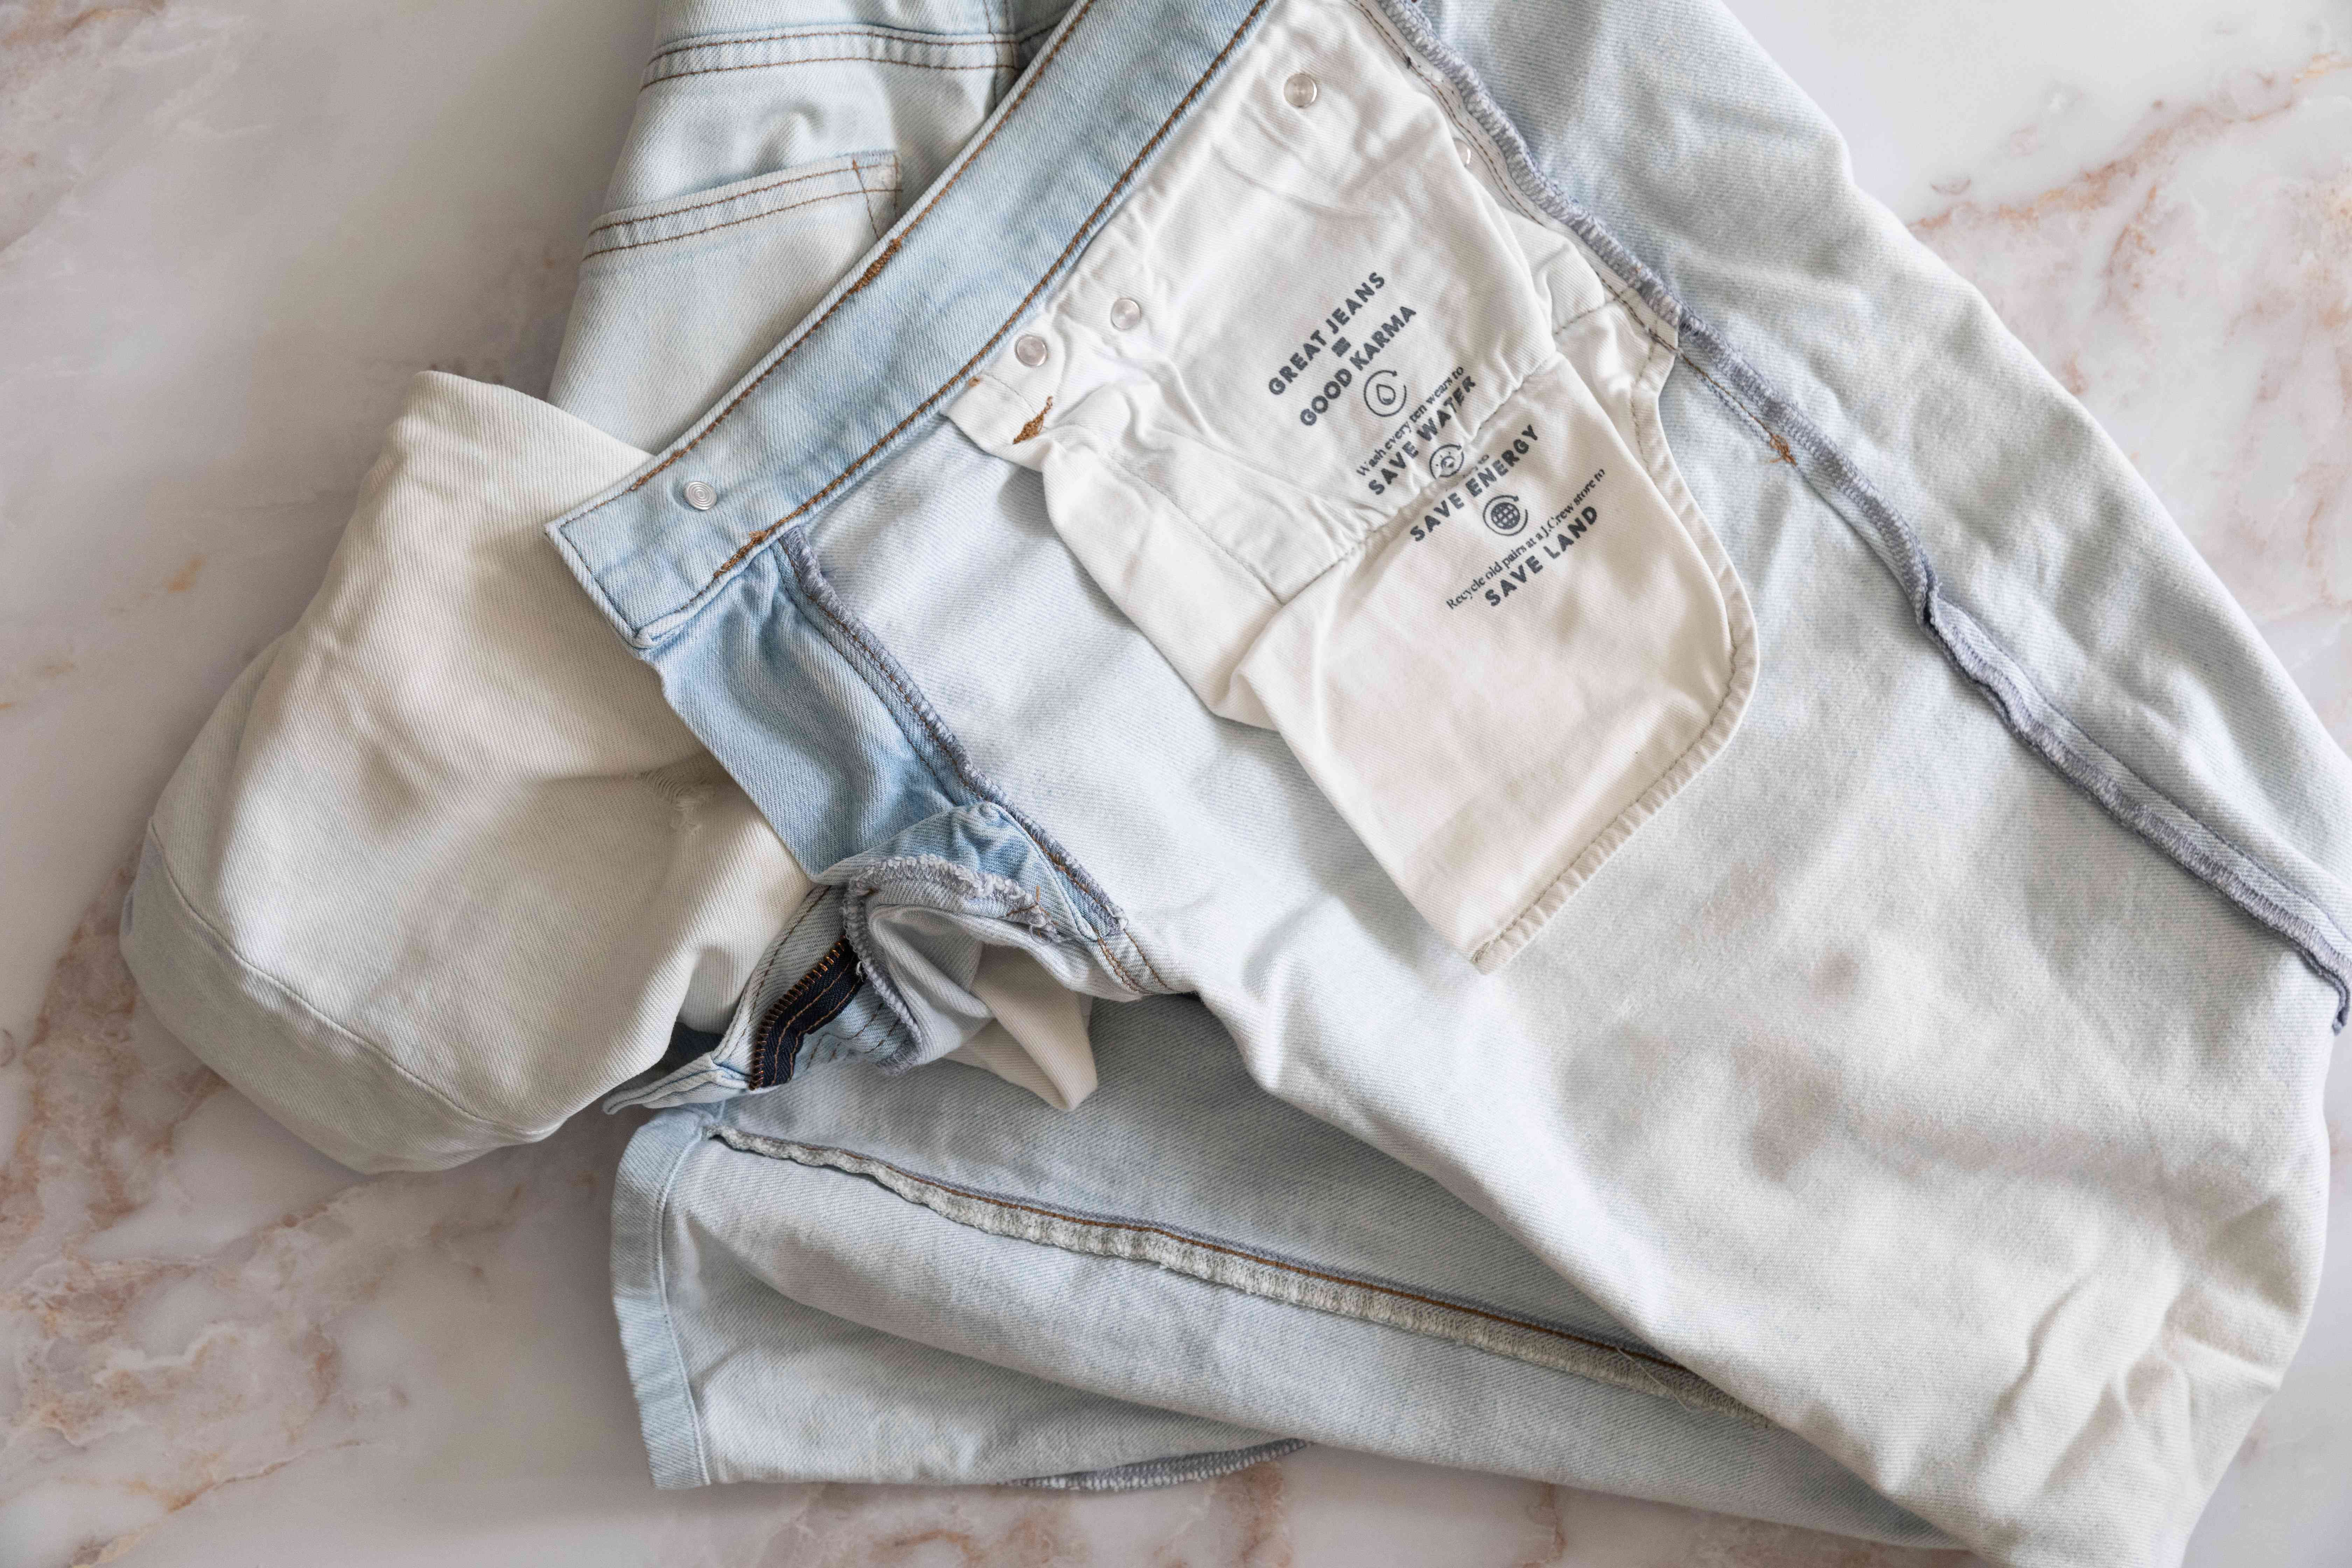 Denim pants turned inside out for cleaning